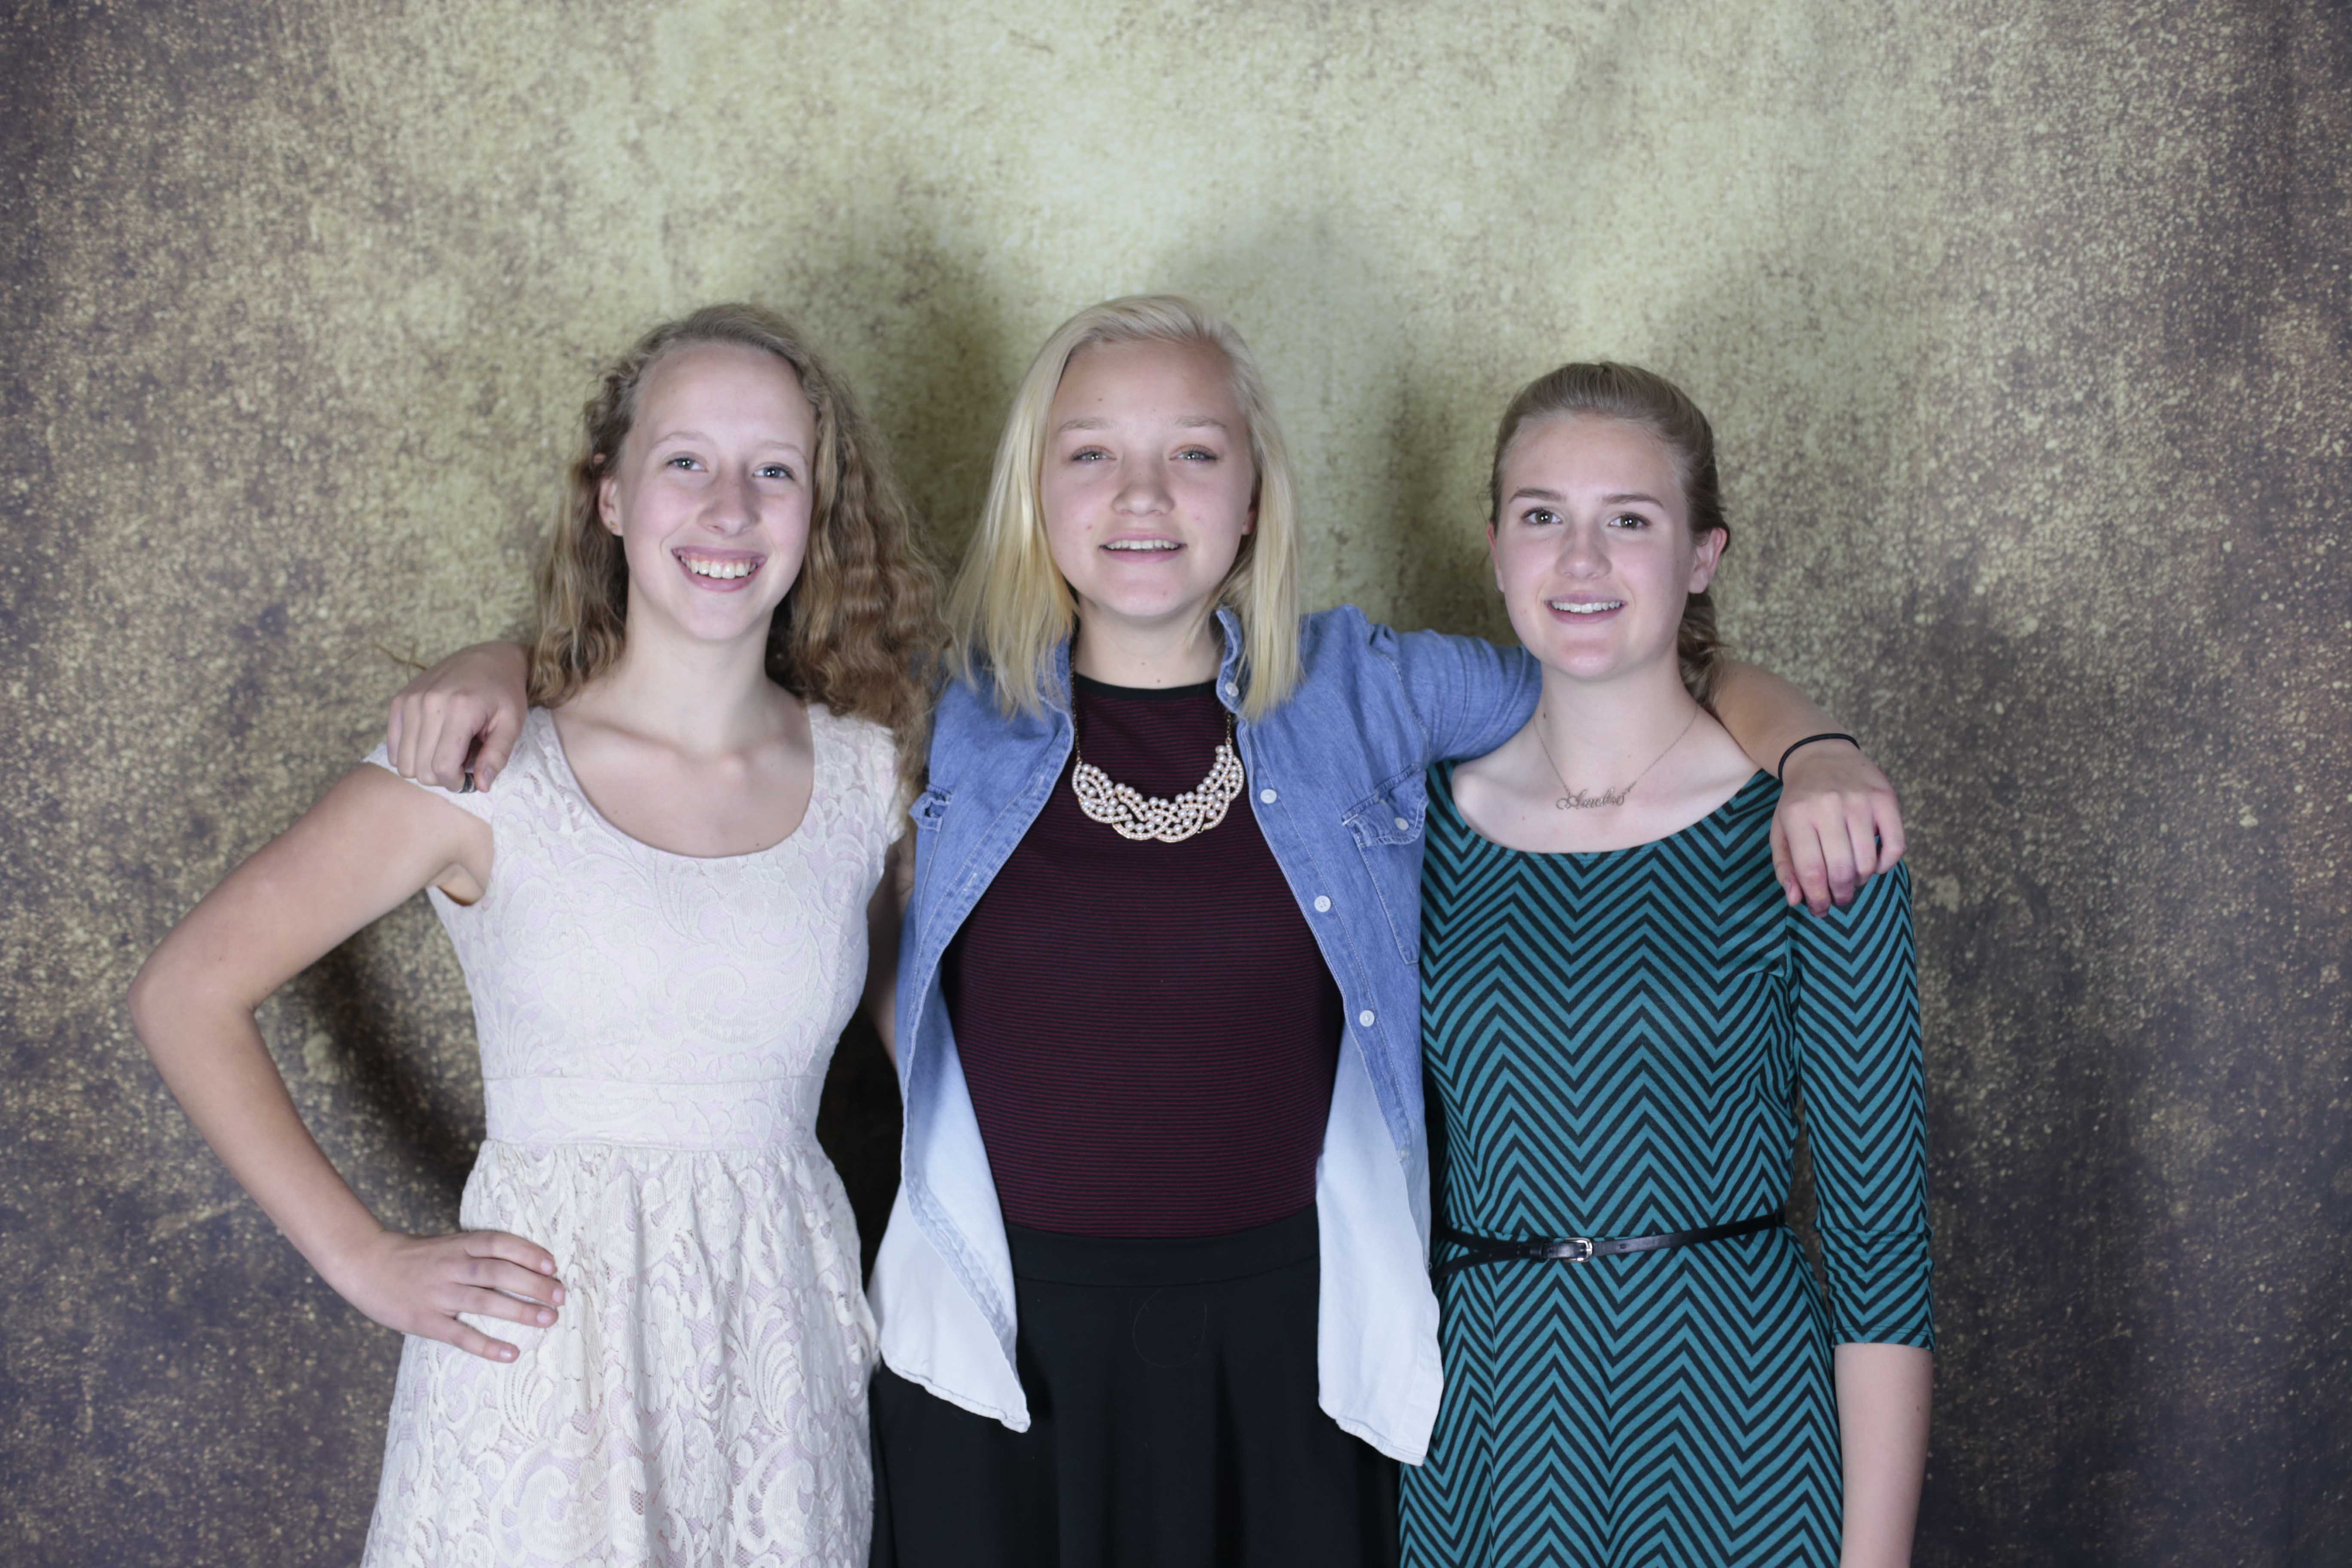 The new executive board of Stuco for the 2016-2017 year: Lily Reavis (11), Monique Heiniger (11) and Amelia McKenzie (11). Not Pictured: Andrea Edwards (11).